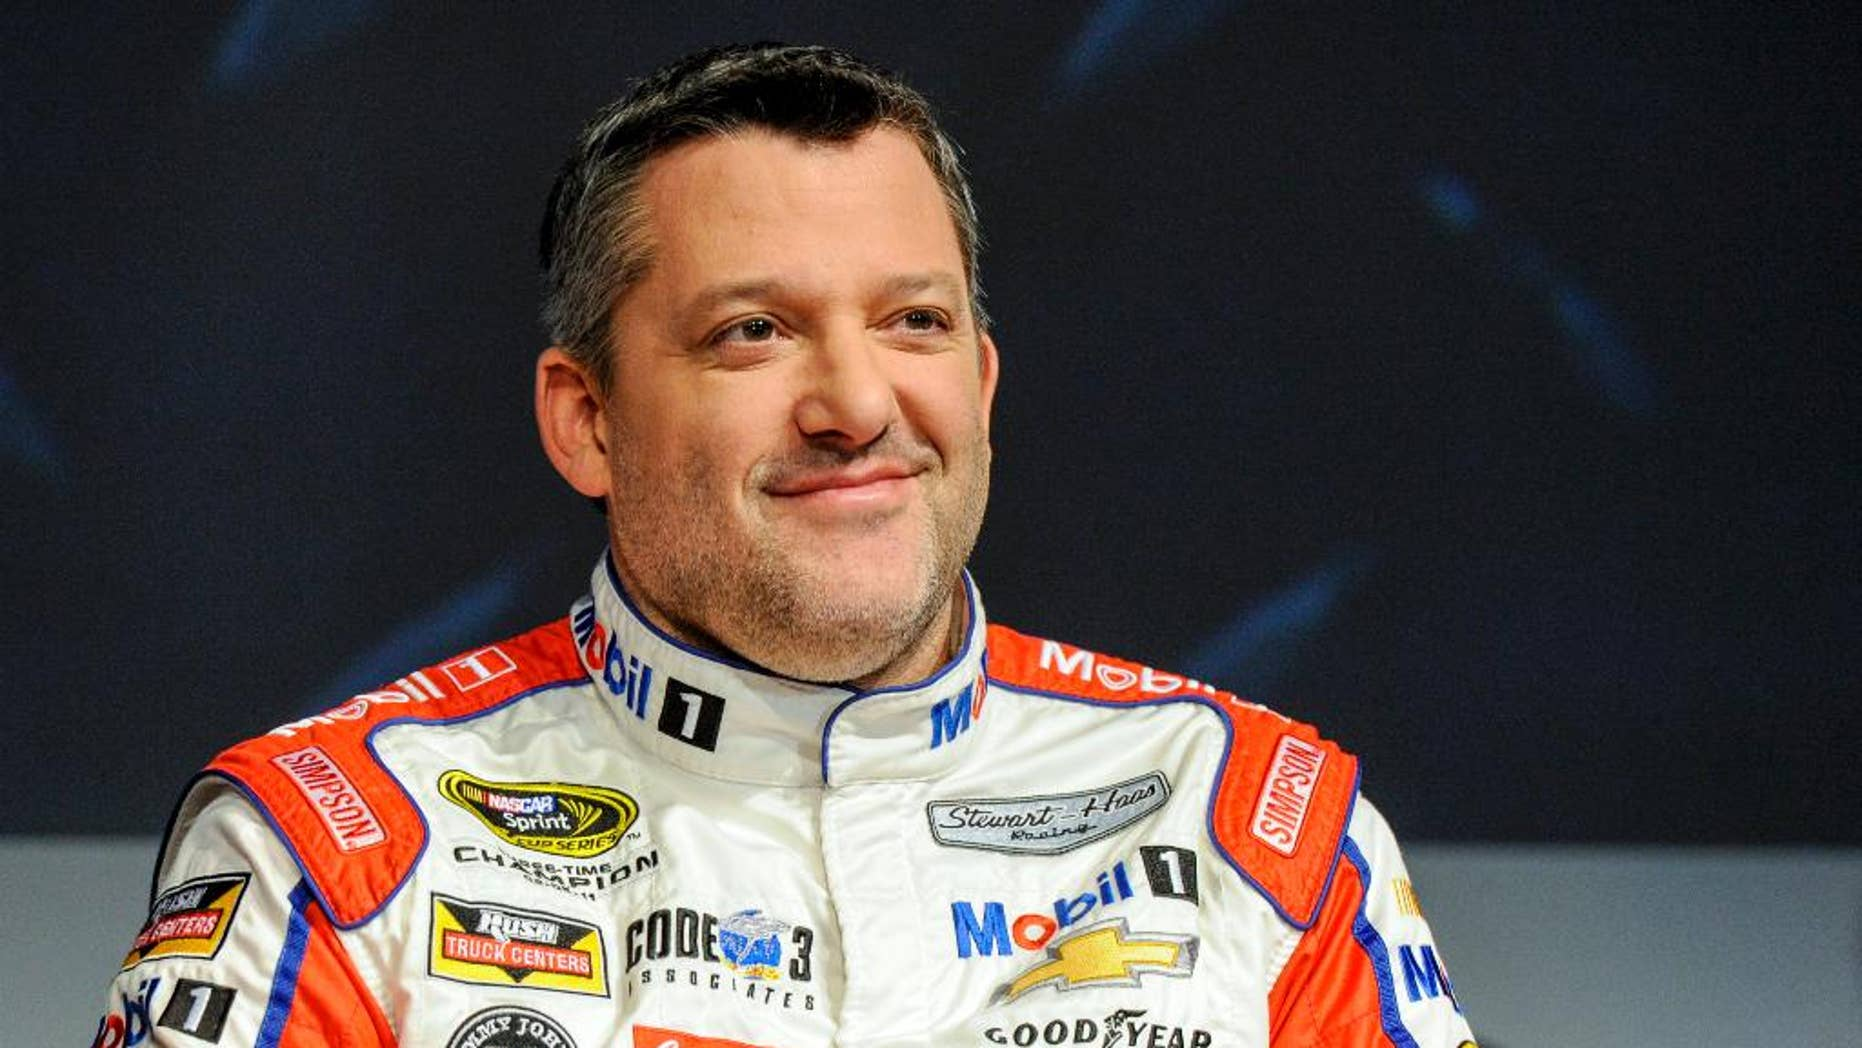 FILE - In this Thursay, Jan. 21, 2016, file photo, Stewart Haas Racing co-owner and driver Tony Stewart talks to members of the media during the NASCAR Charlotte Motor Speedway Media Tour in Charlotte, N.C. Stewart suffered his first serious hit since his return from a back injury during a three-car wreck at practice at Dover International Speedway, Friday, May 13, 2016. (AP Photo/Mike McCarn, File)